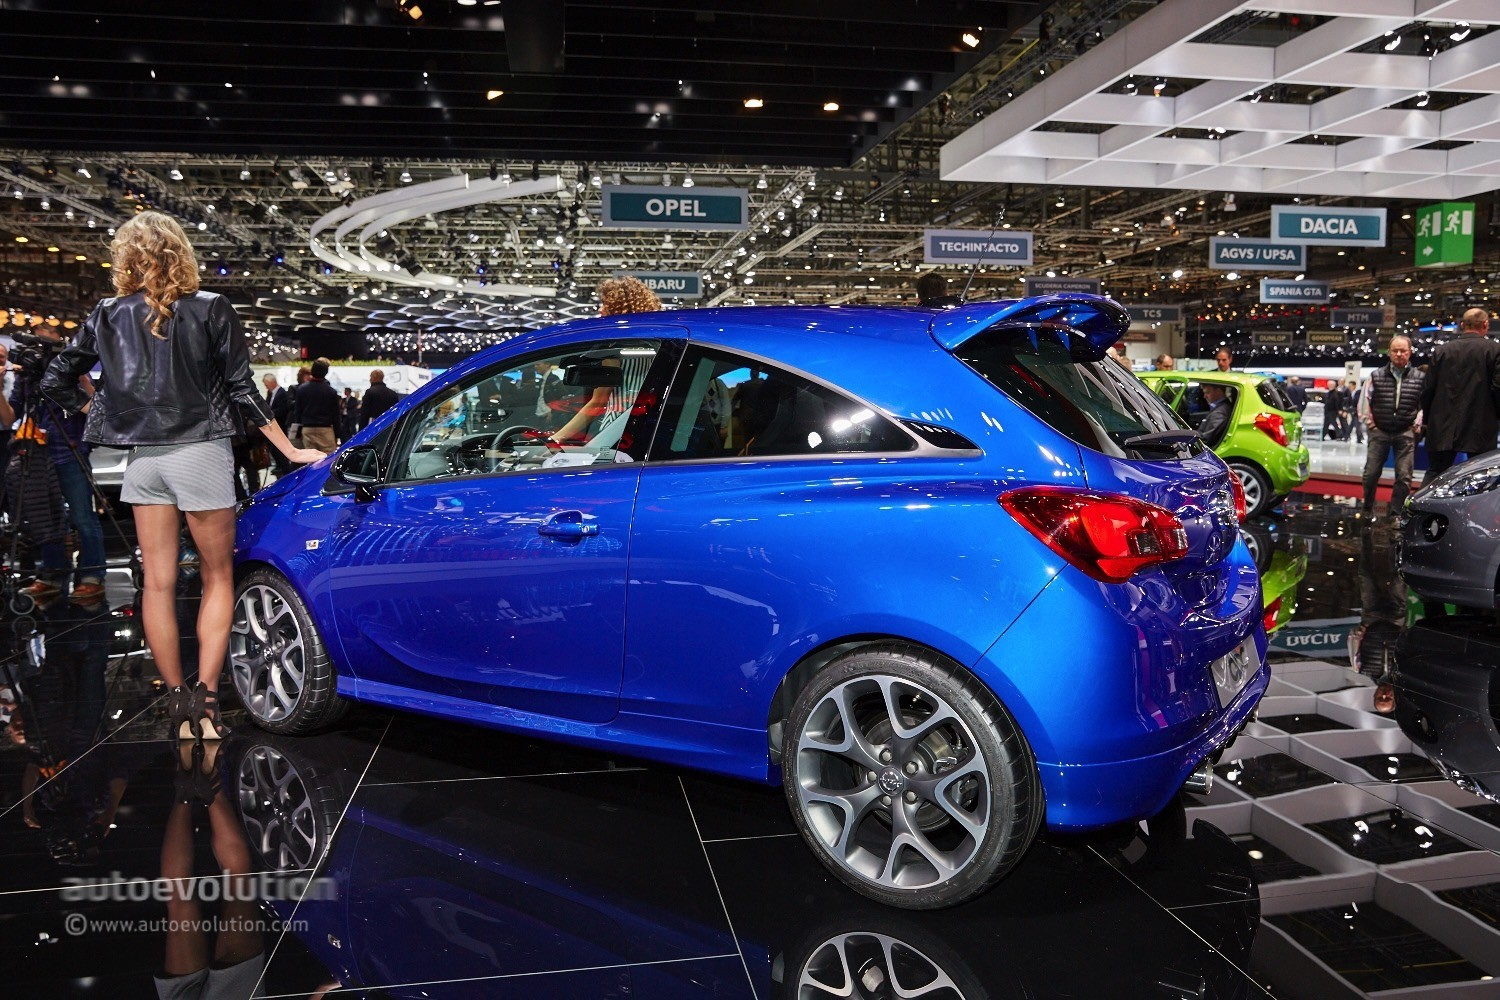 2015 Opel Corsa Opc Makes The Hot Girls Of Geneva Go Nim